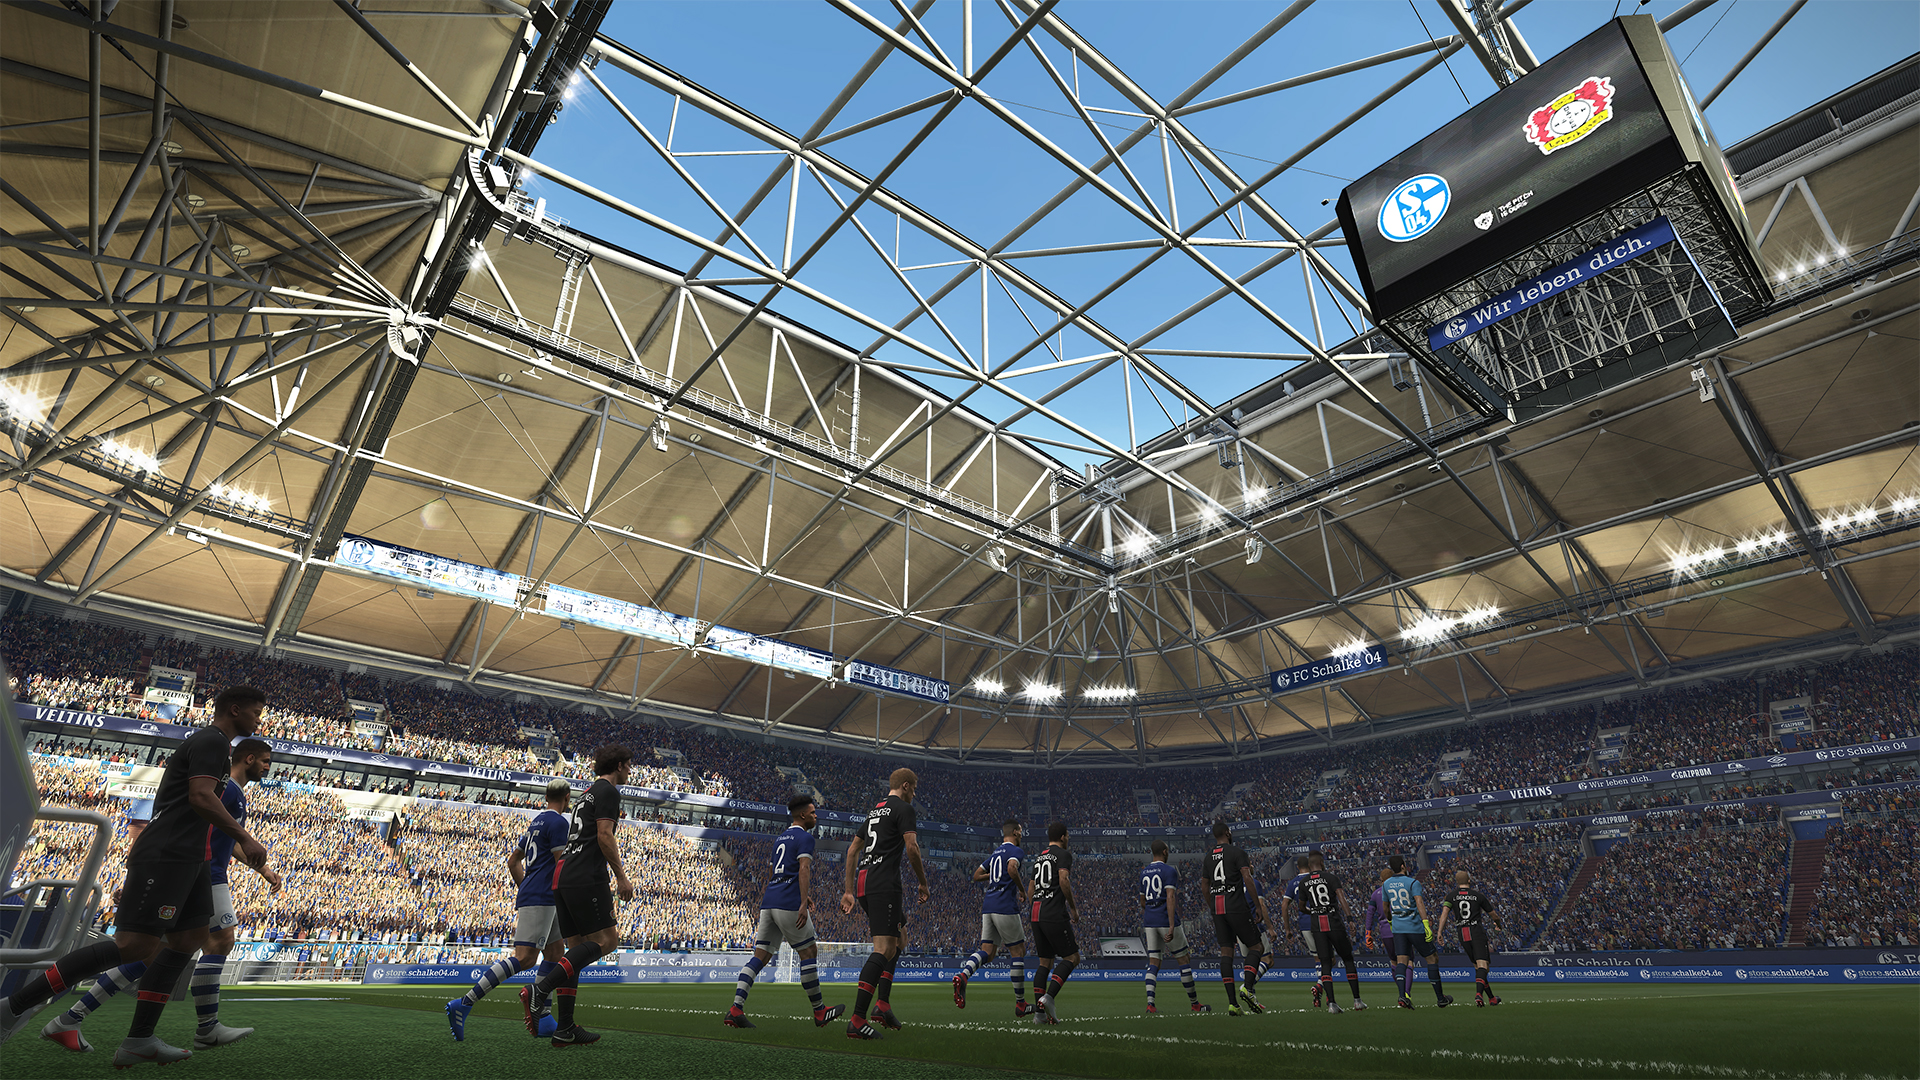 Pro Evolution Soccer 2019 Review - A Great Game in Need of Fixing